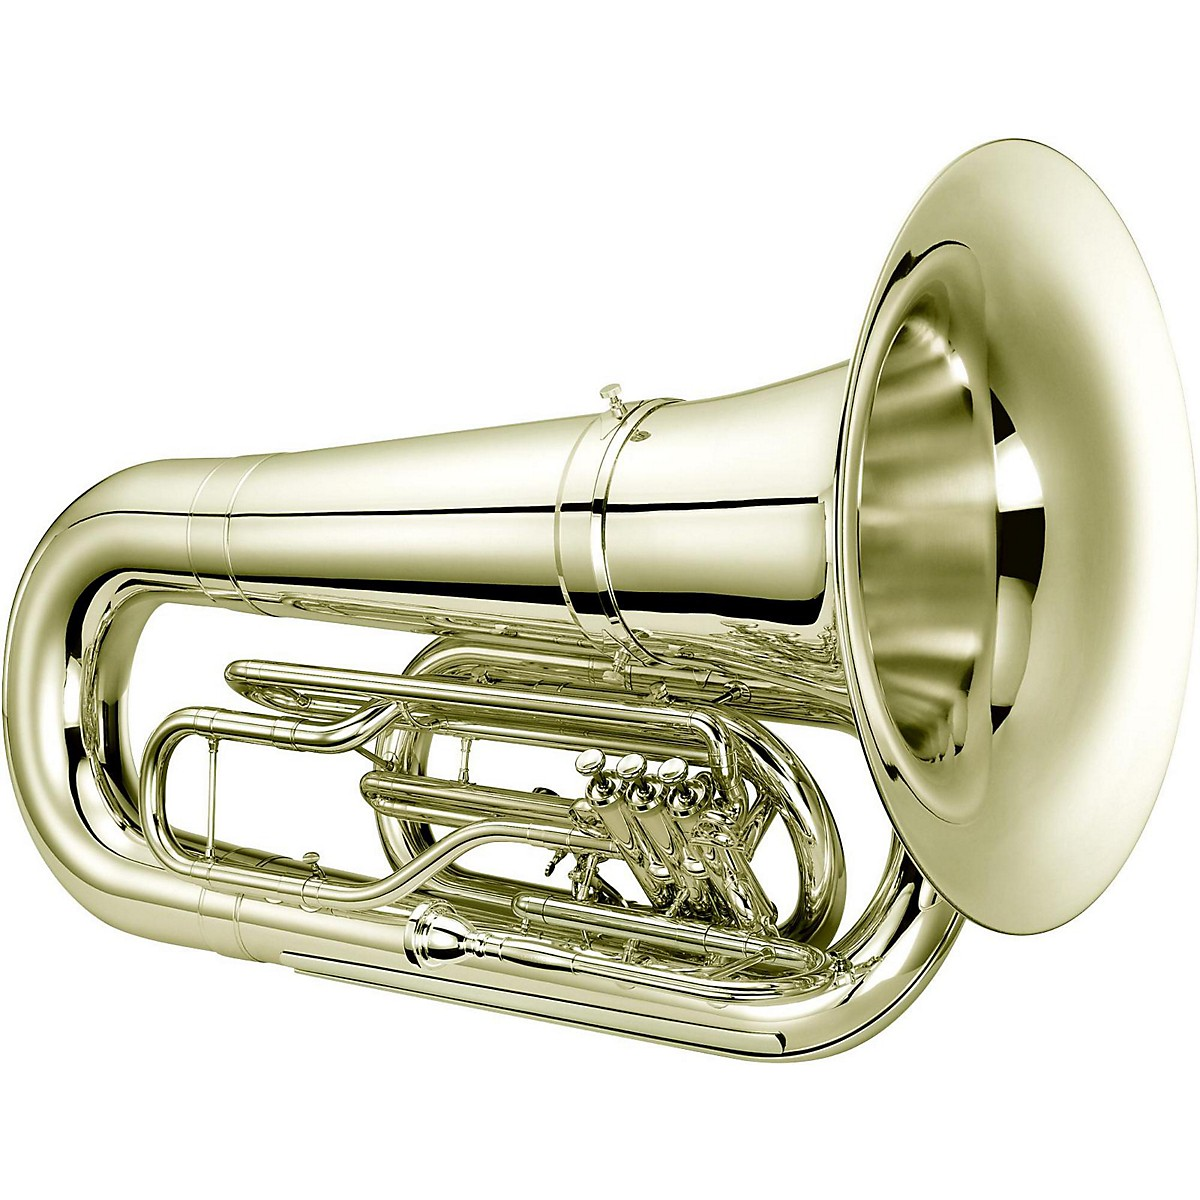 Jupiter JTU1100M Quantum Series BBb Marching Tuba